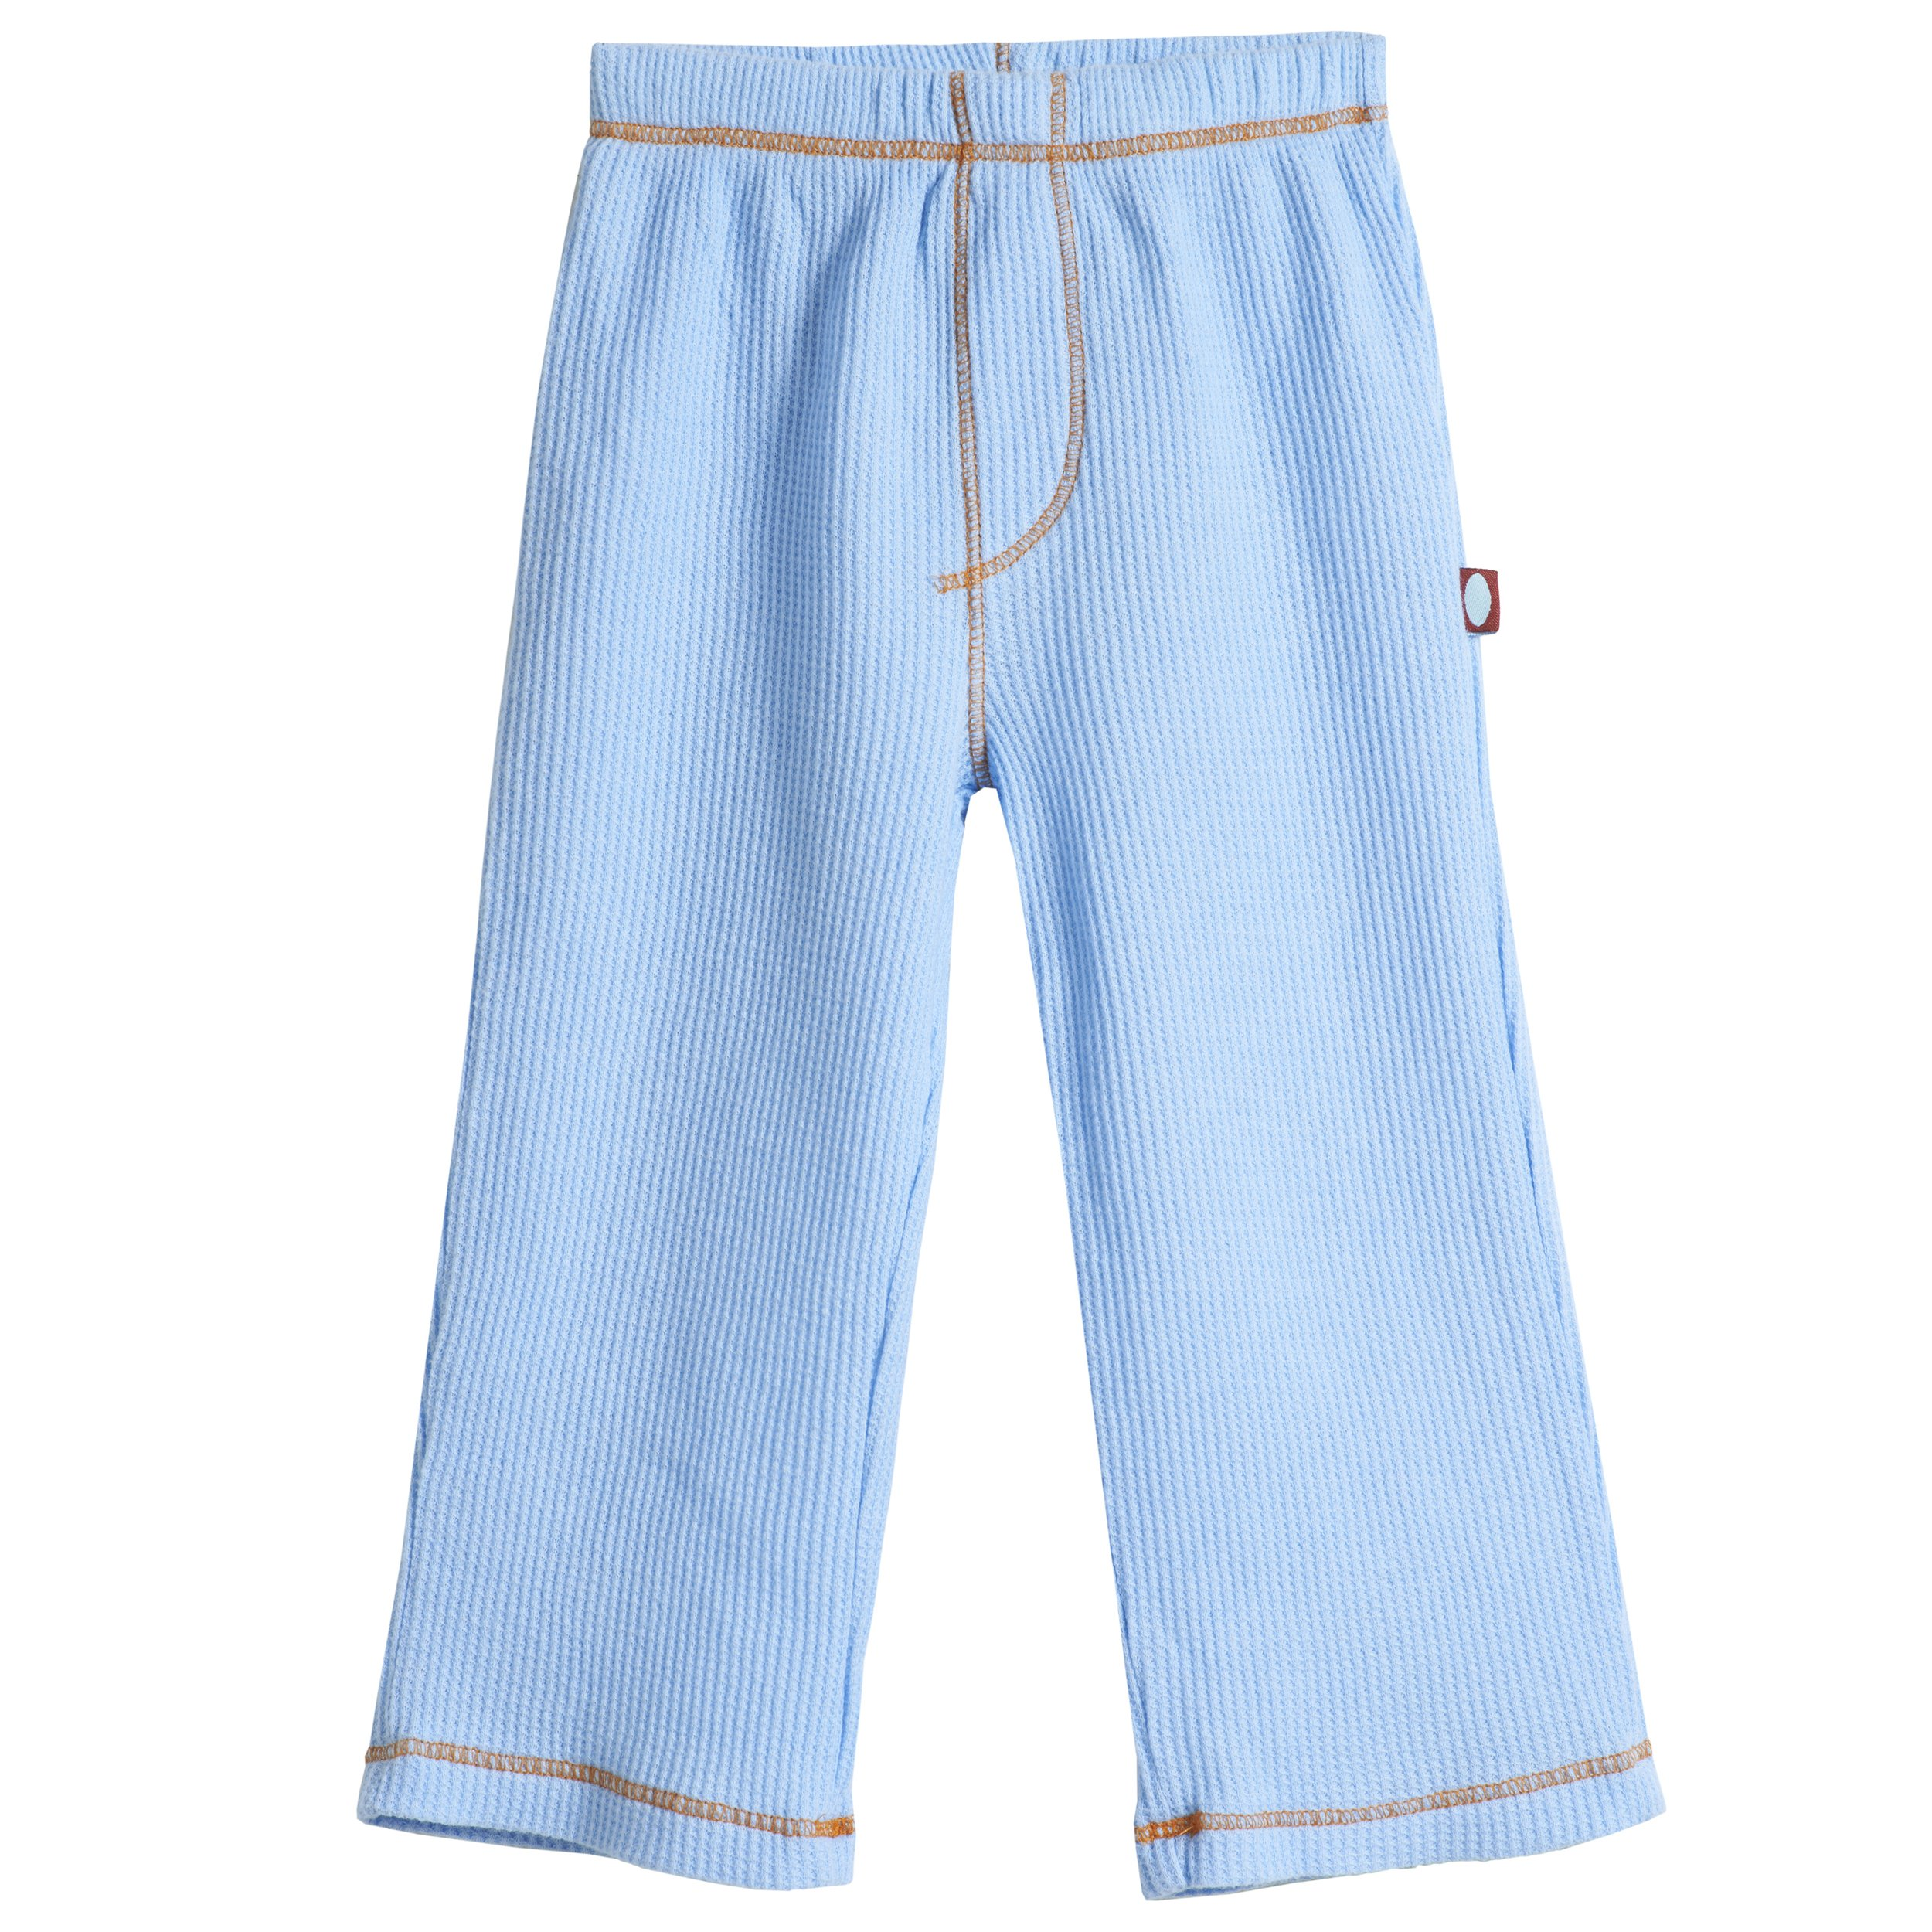 City Threads Little Boy Solid Thermal Pants for Fall and Winter Cozy Warm Super Soft Perfect for Sensory Sensitive Kids and SPD, Bright Light Blue, 6